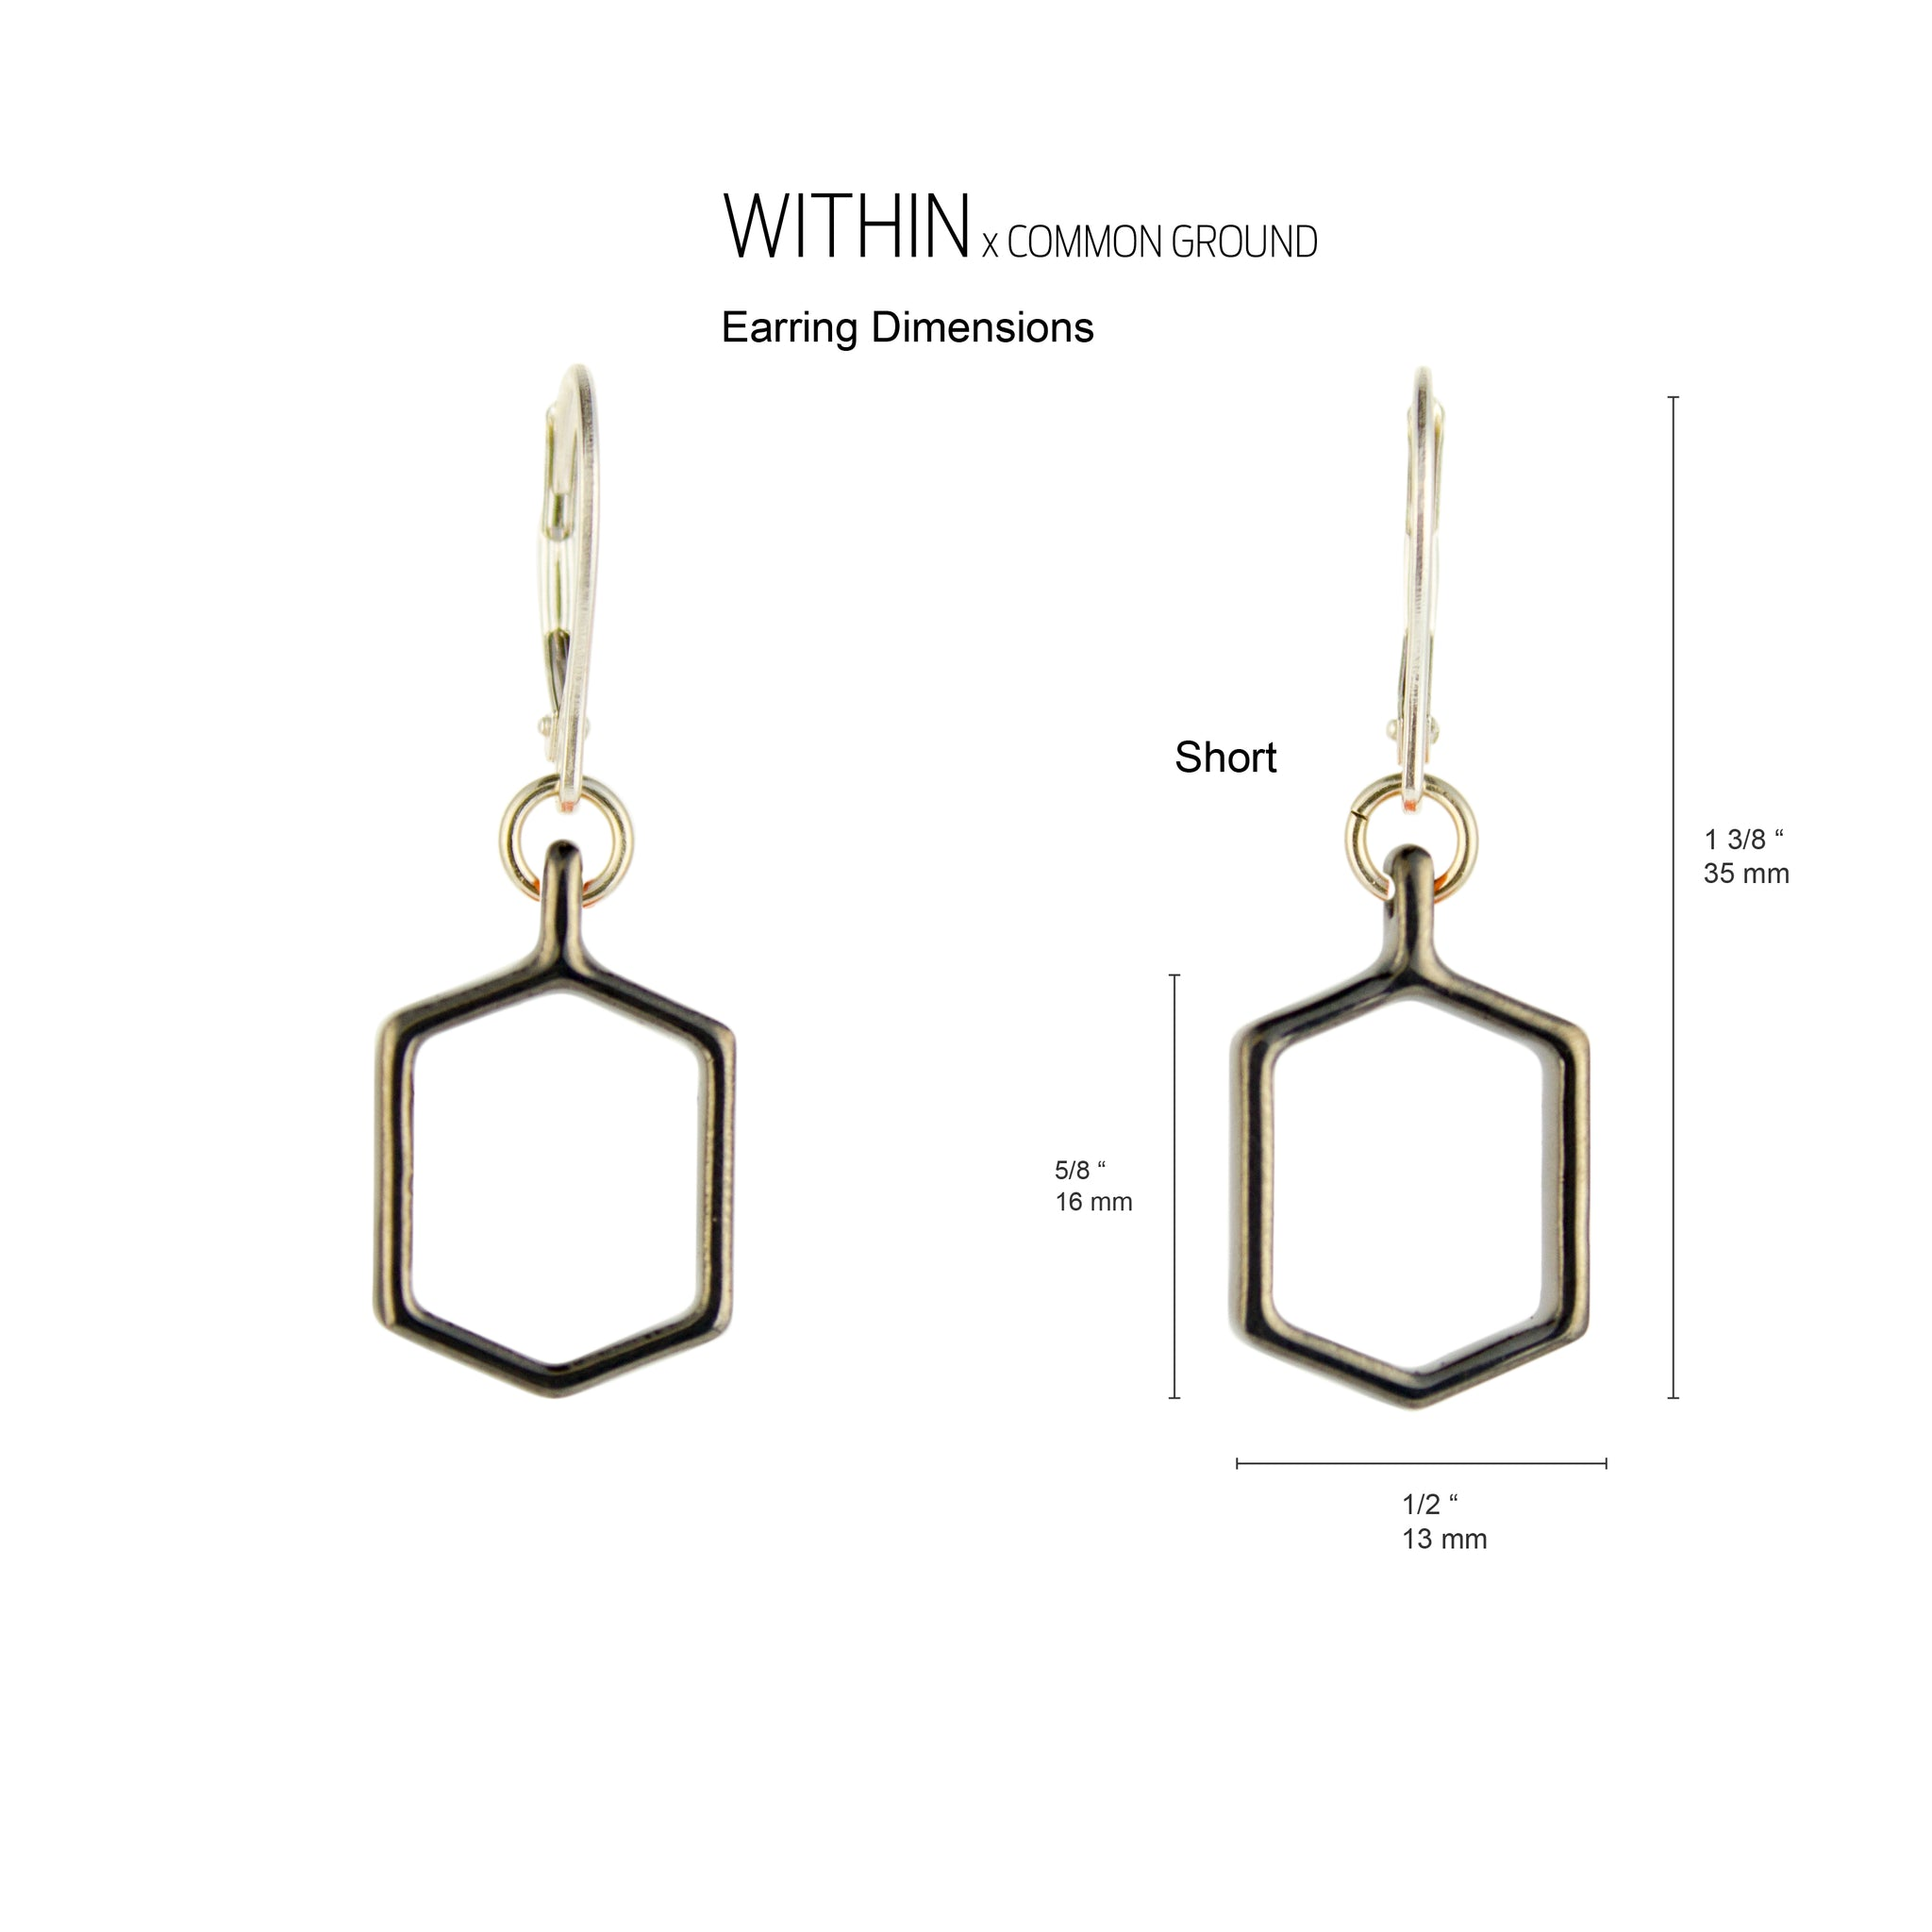 Super_Chrome - WITHIN x COMMON GROUND Earring Dim View